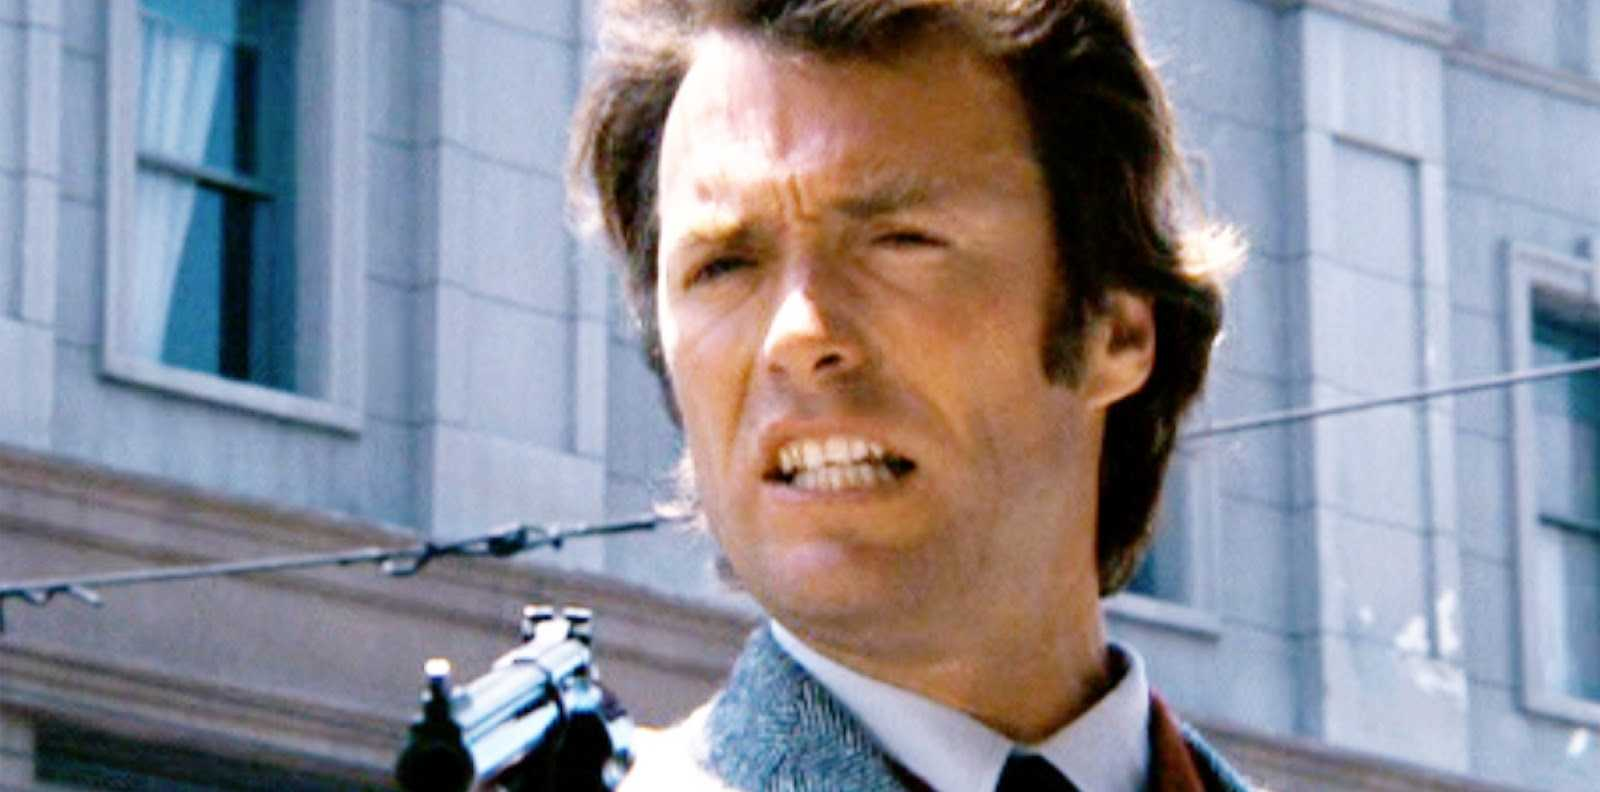 MAKE MY DAY: Clint Eastwood Inspector Harry Callahan in the Dirty Harry movie series. Copyright Warner Bros. Inc. and the Malpaso Company.